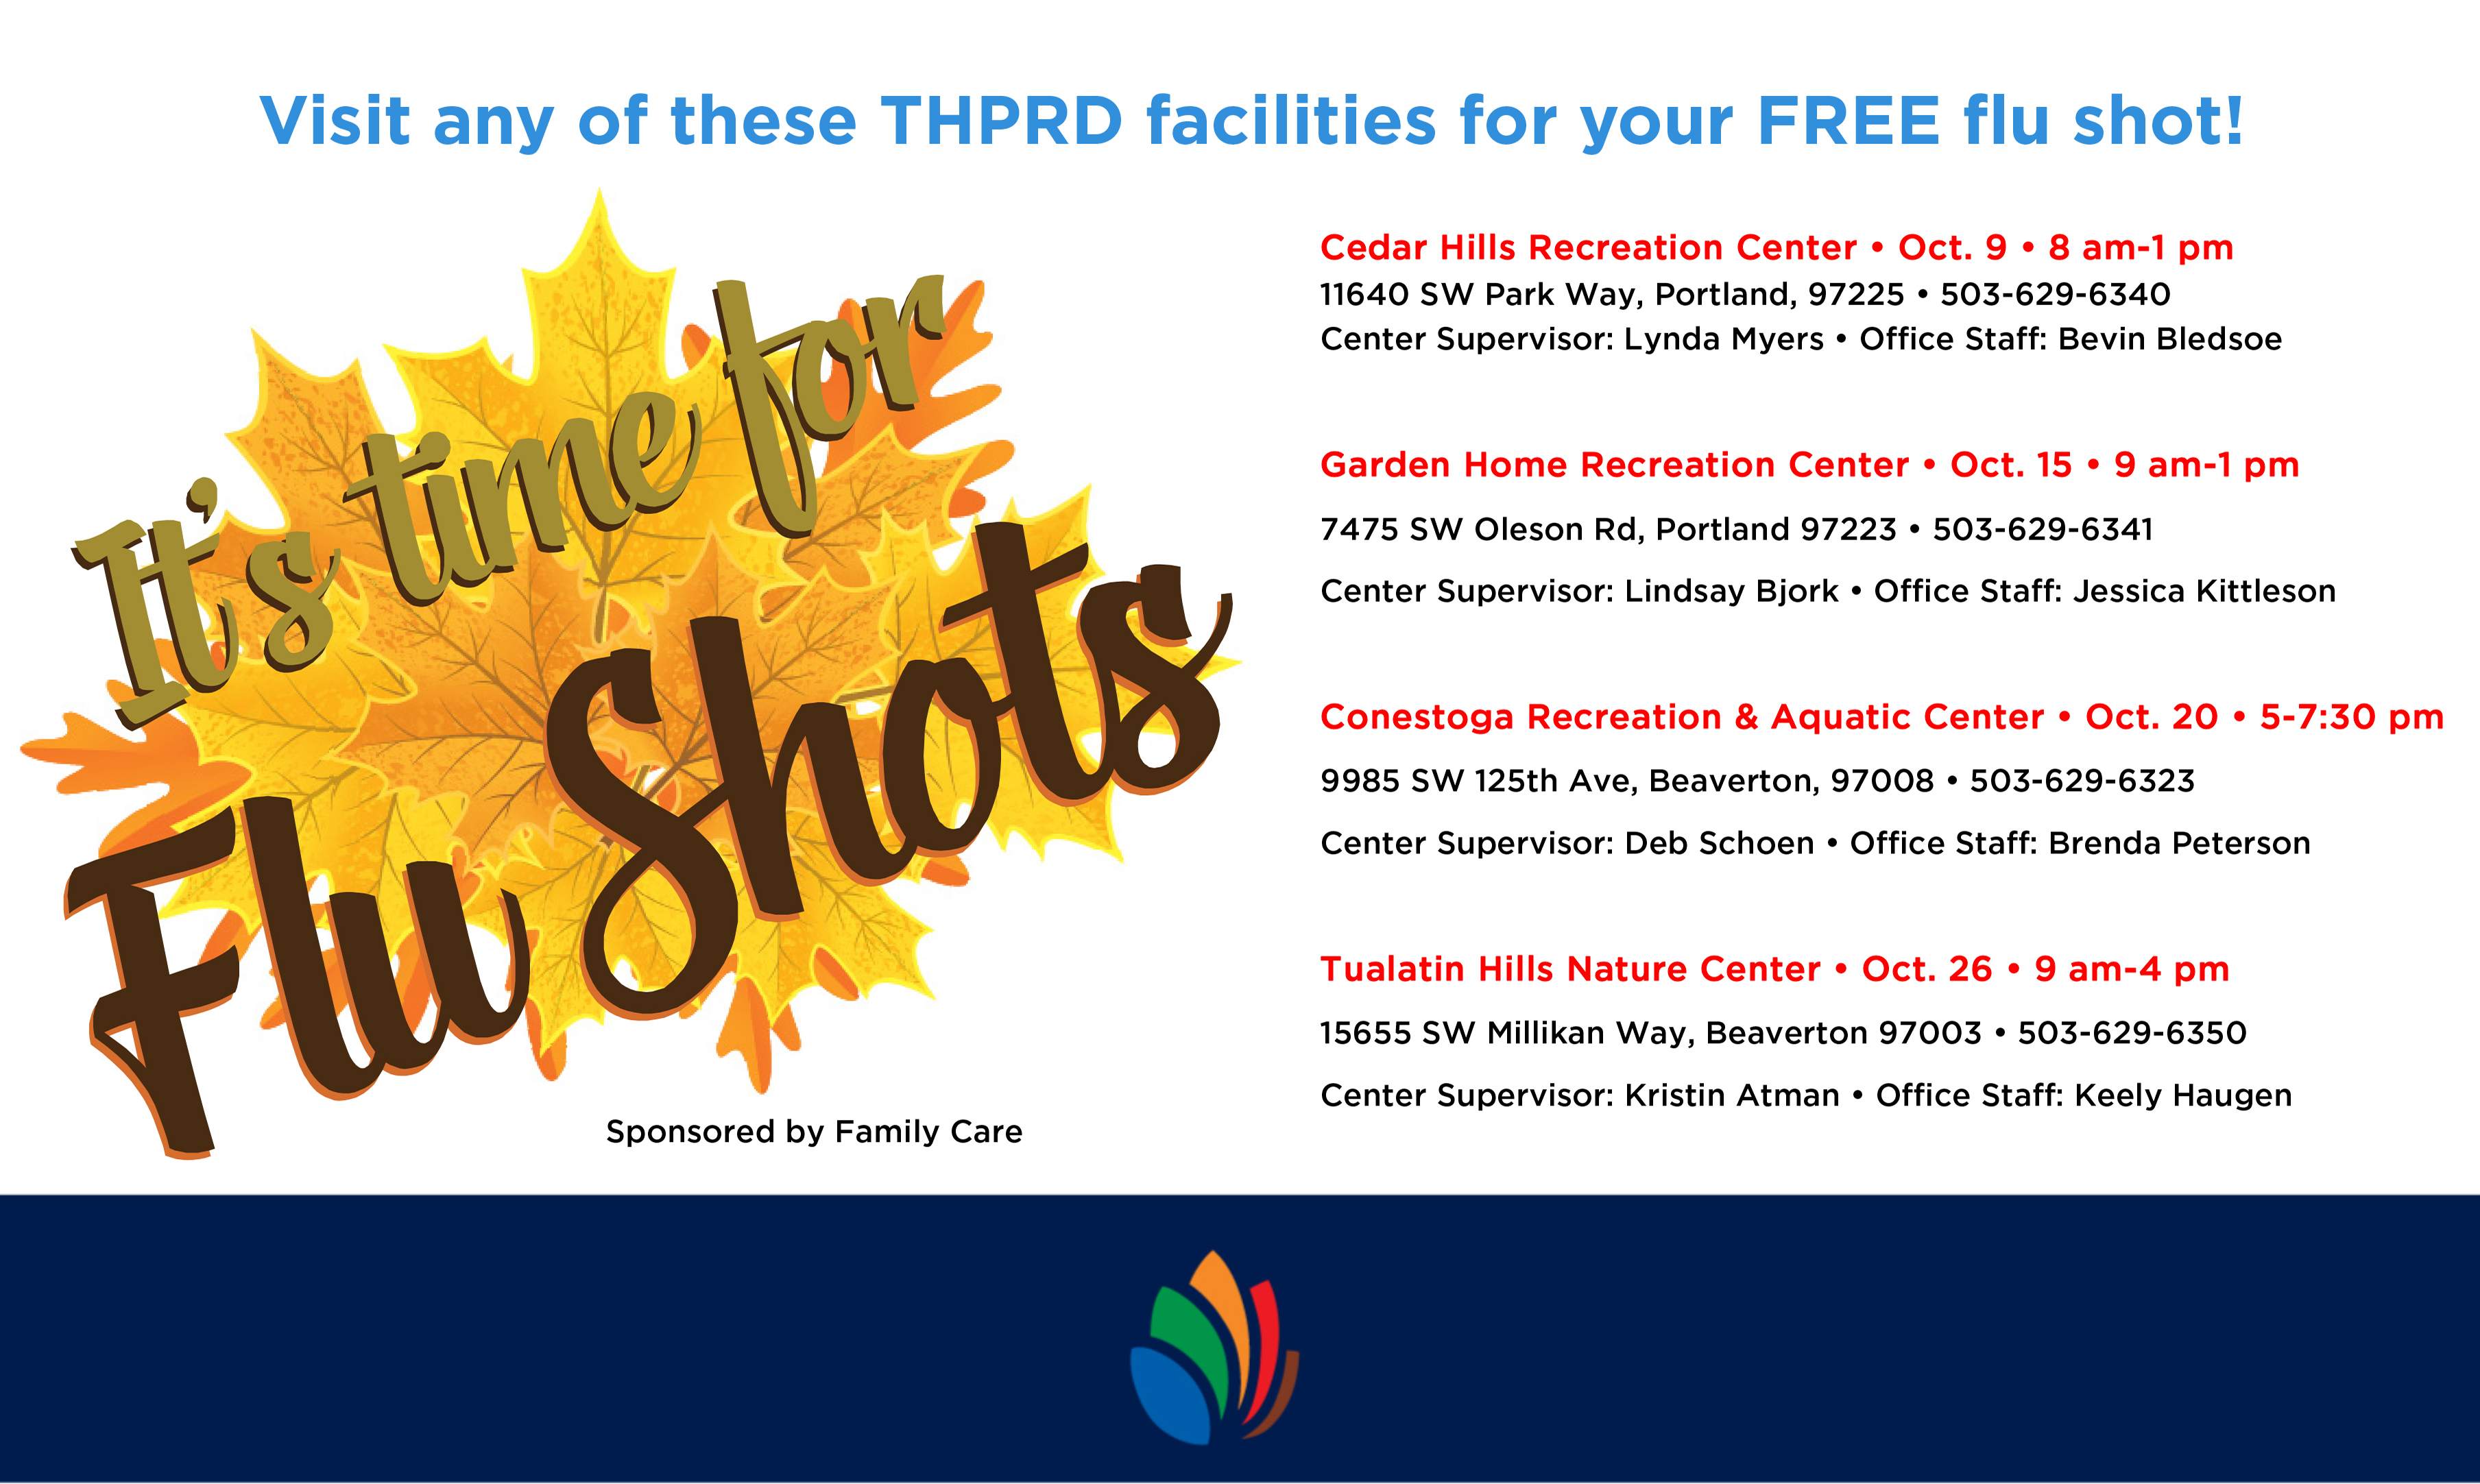 Avoid Flu Season - Free flu shots in October